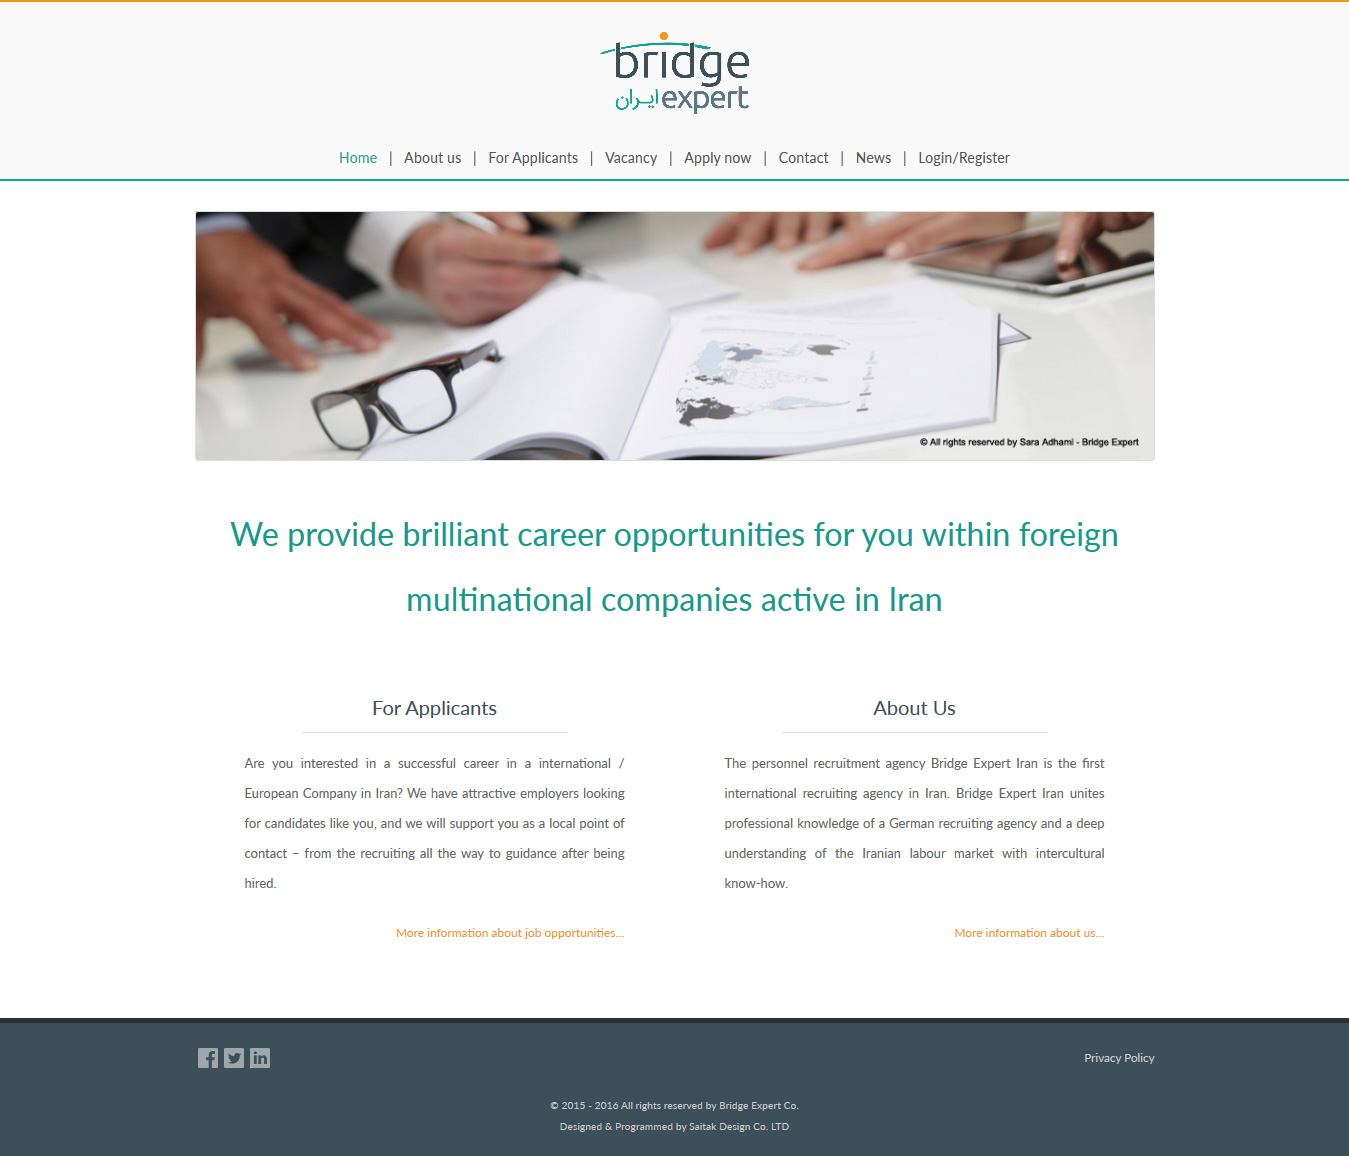 BridgeExpert